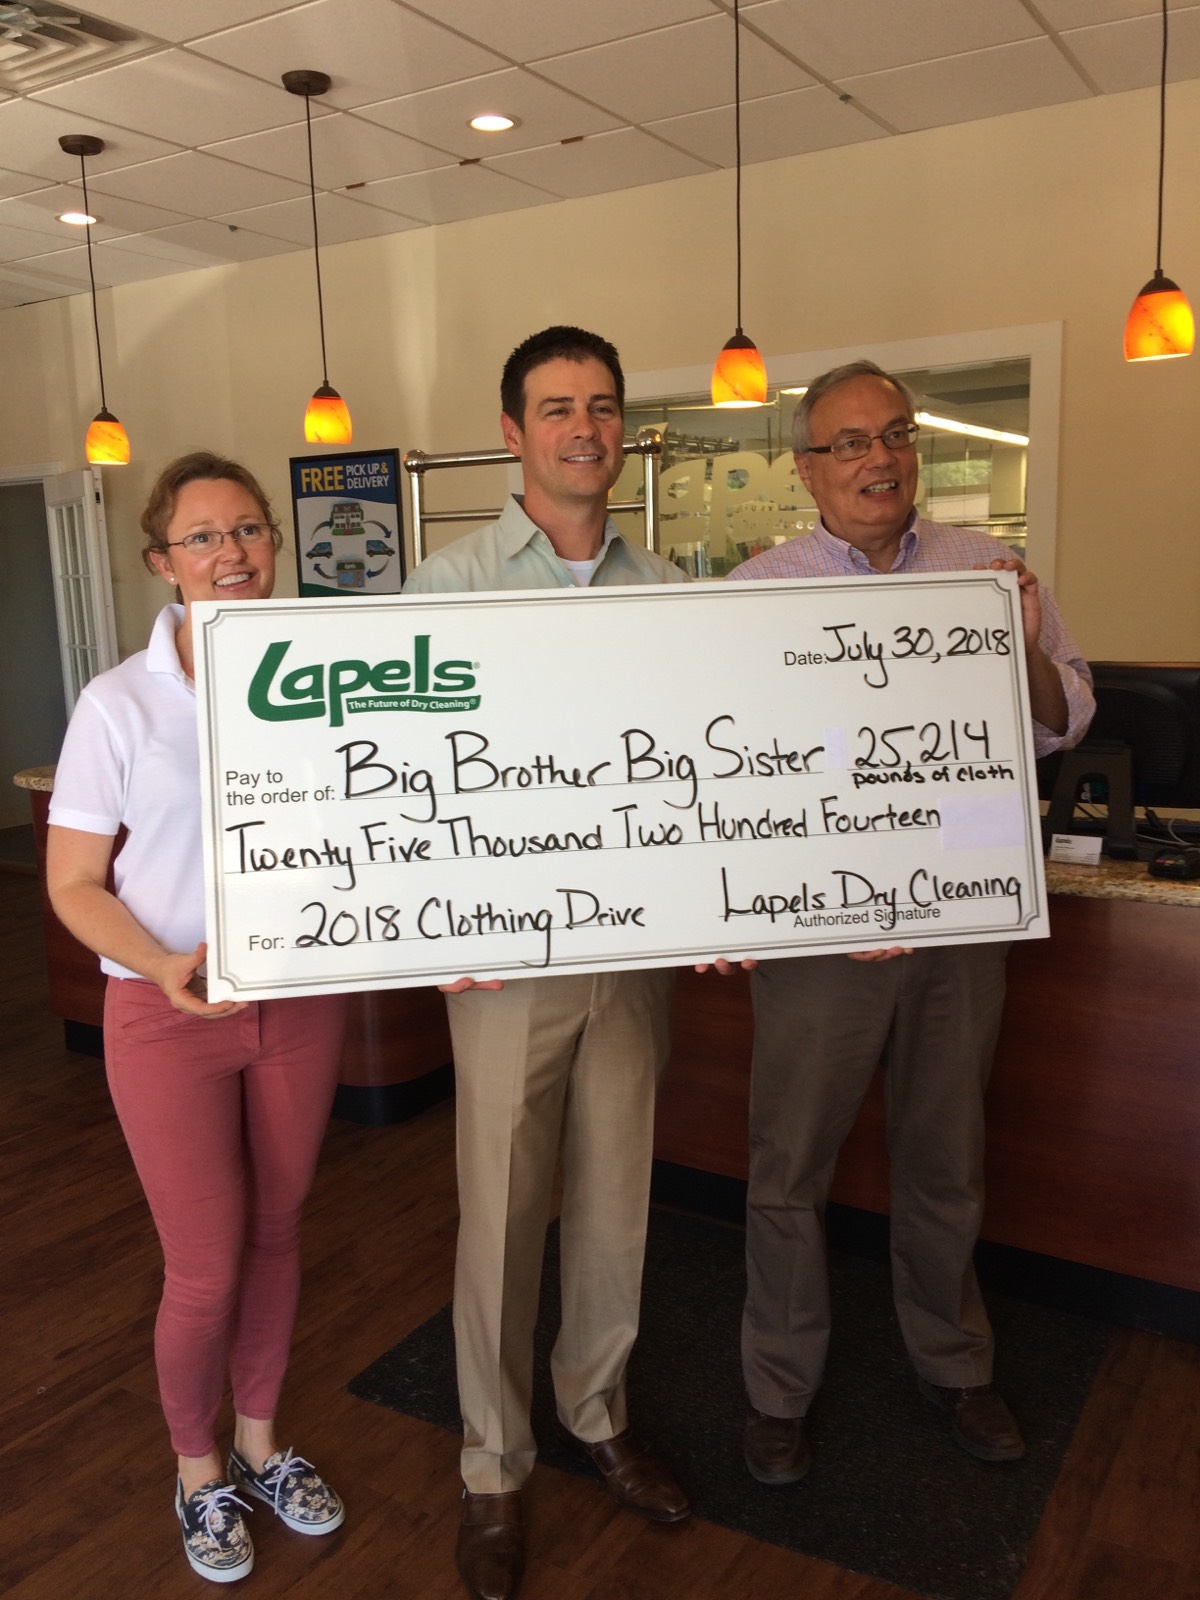 Lapels Dry Cleaning 15th annual clothing drive to benefit Big Brother Big Sister generates more than 25,000 pounds of clothes